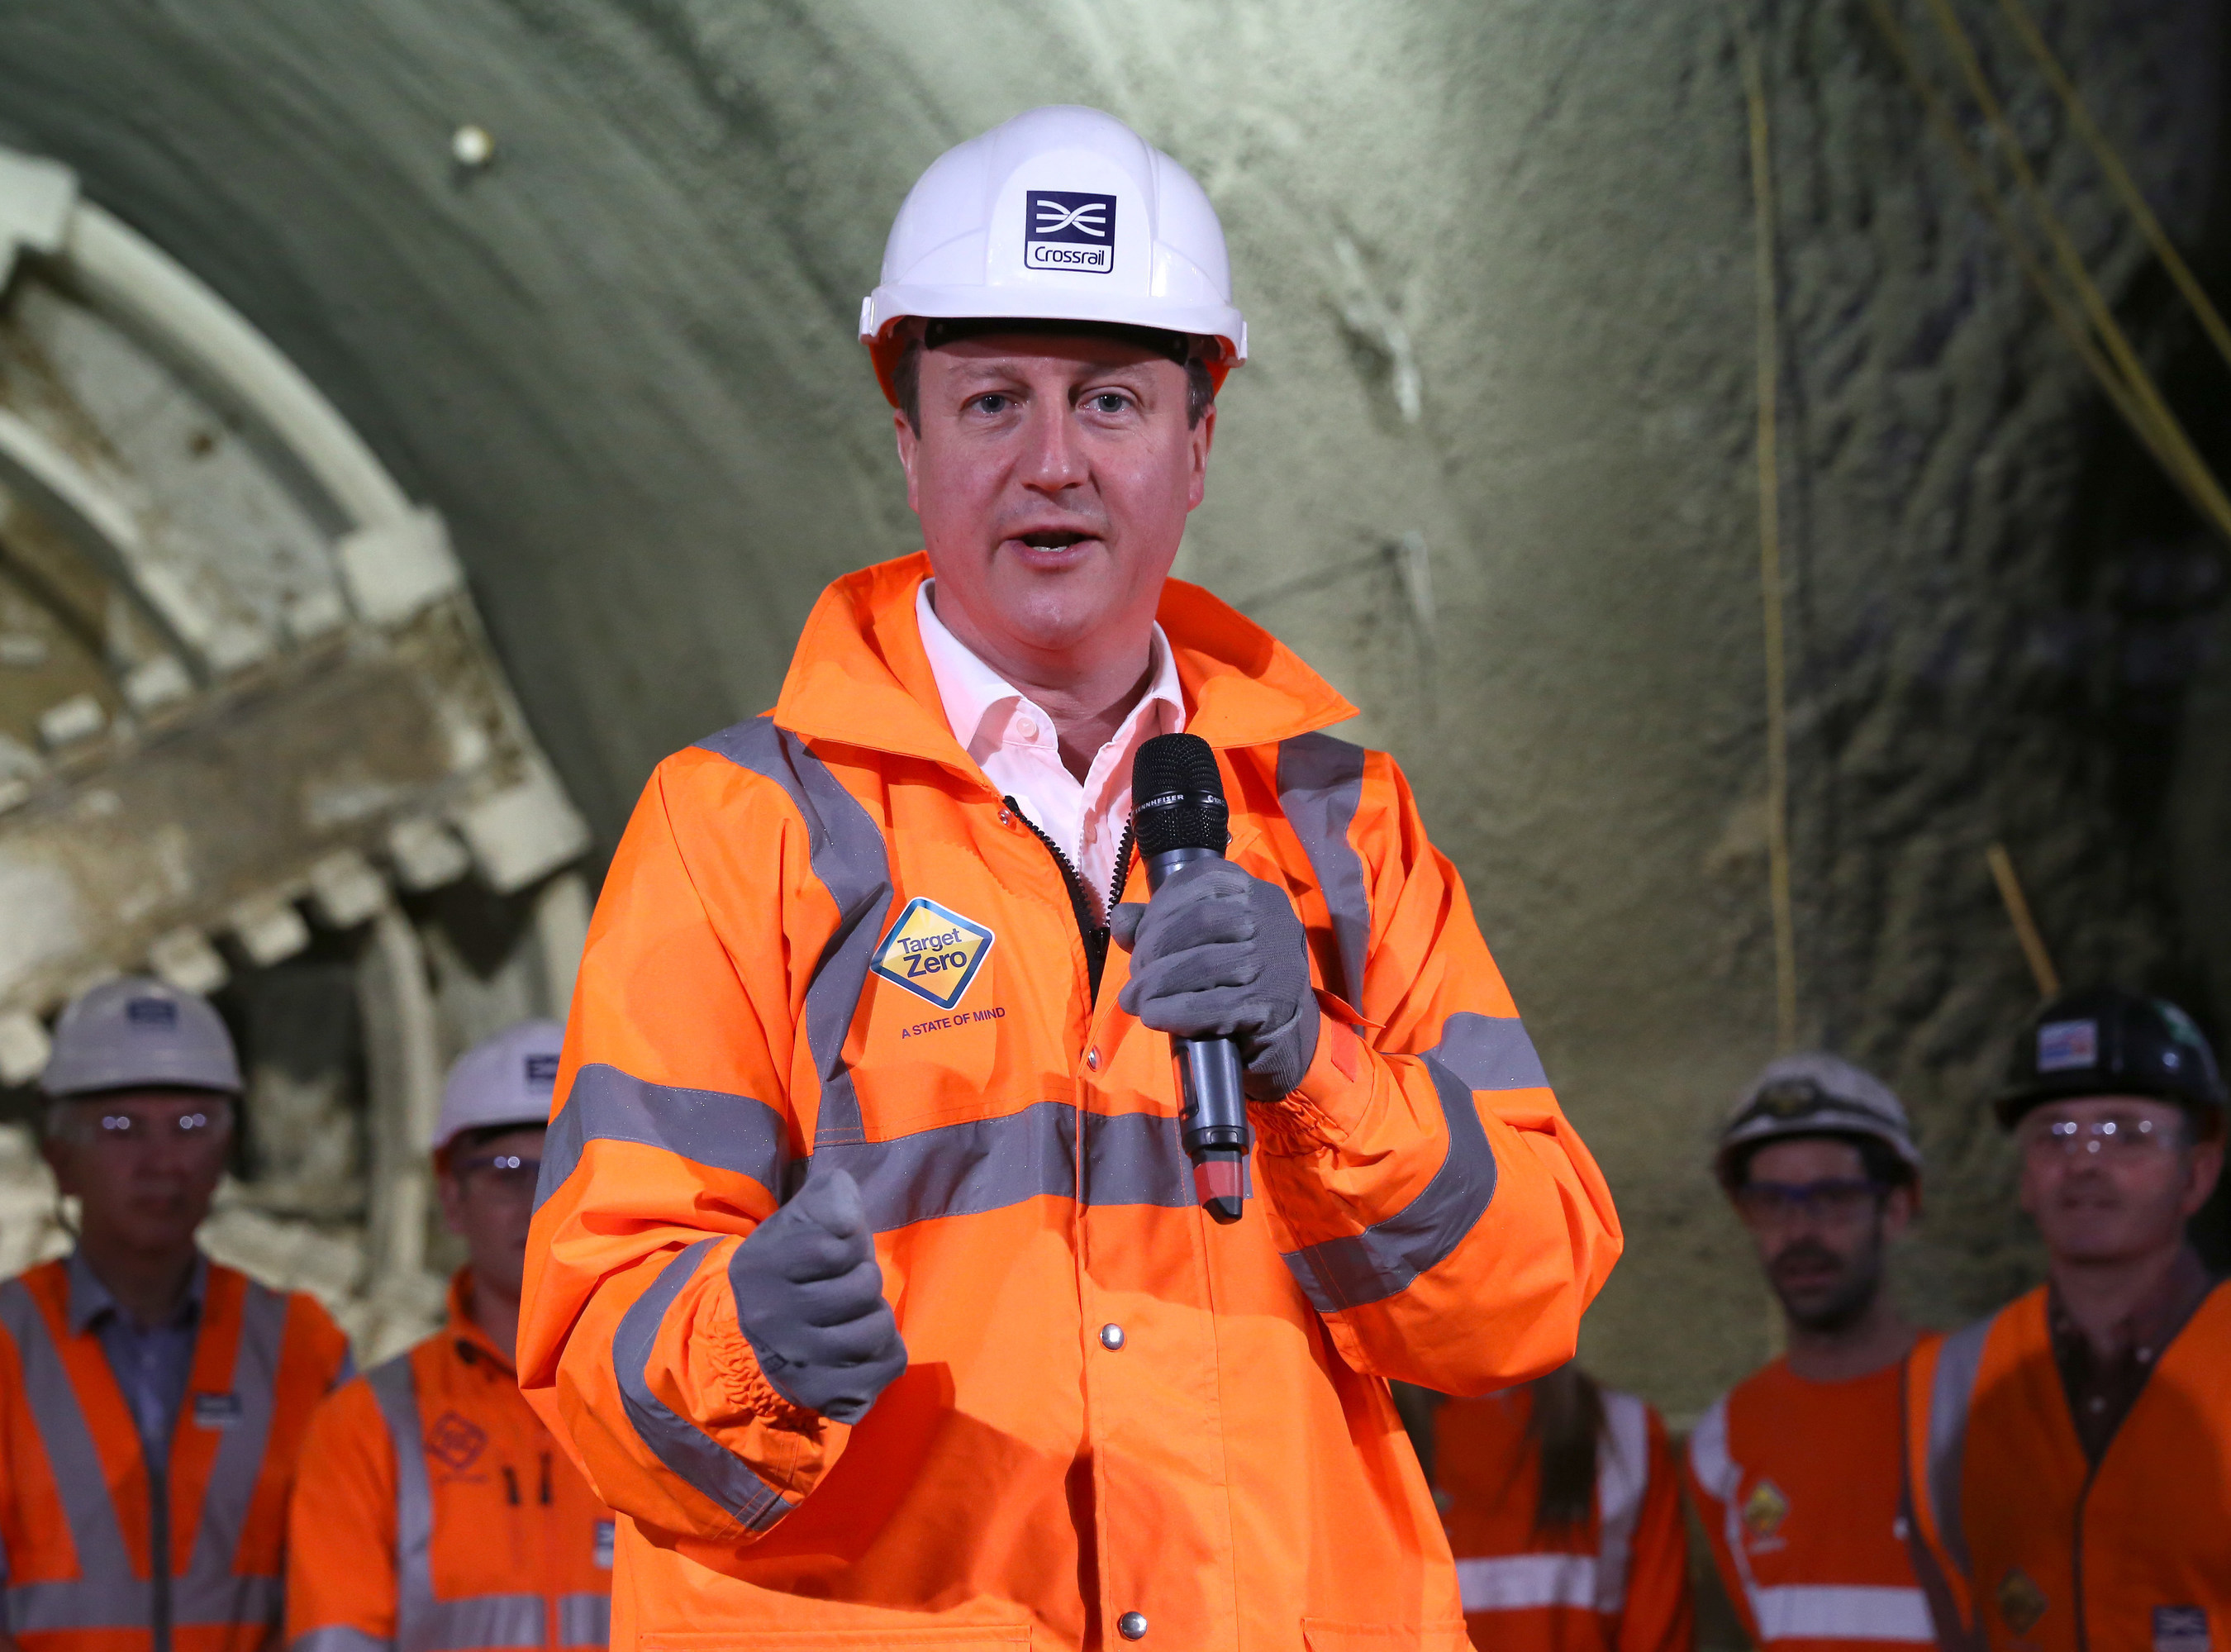 The Prime Minister of the United Kingdom, David Cameron MP, celebrates the completion of Crossrail's tunneling marathon